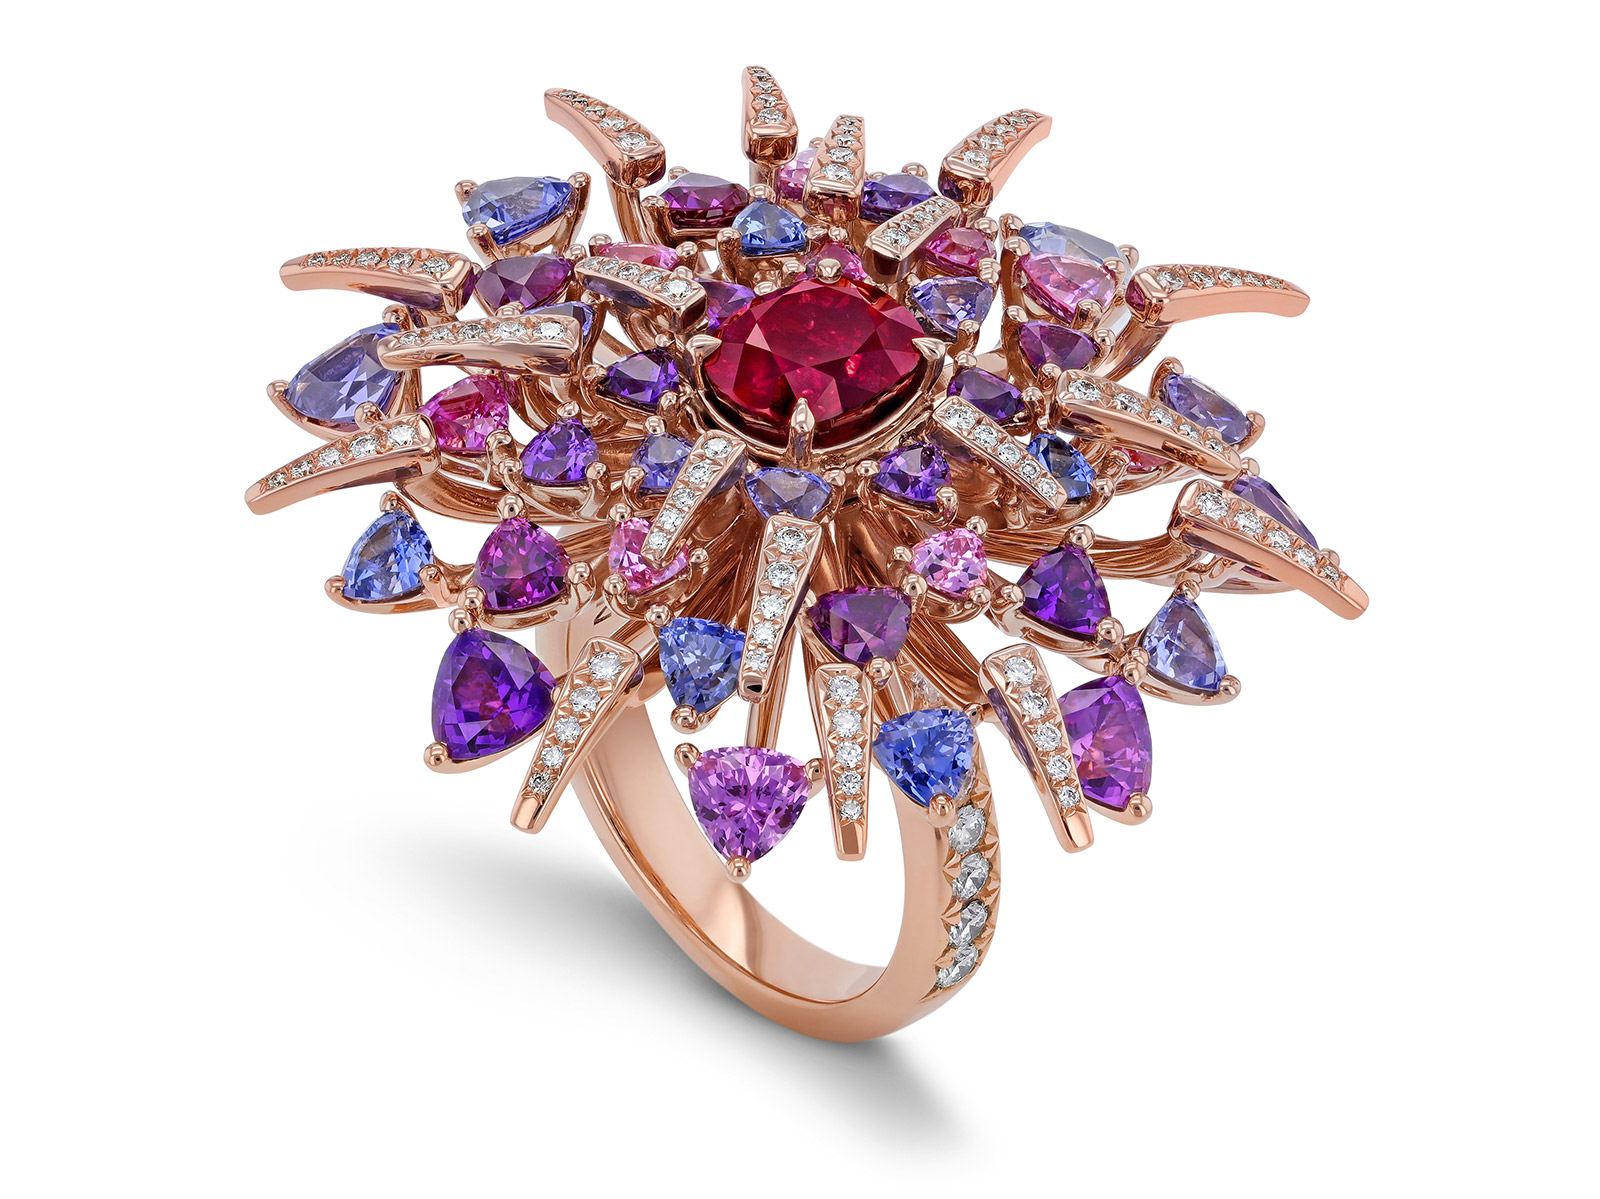 Gübelin 'Red Dahlia' ring with oval cut 2.18ct Burmese ruby, trillion cut sapphires and brilliant cut diamonds